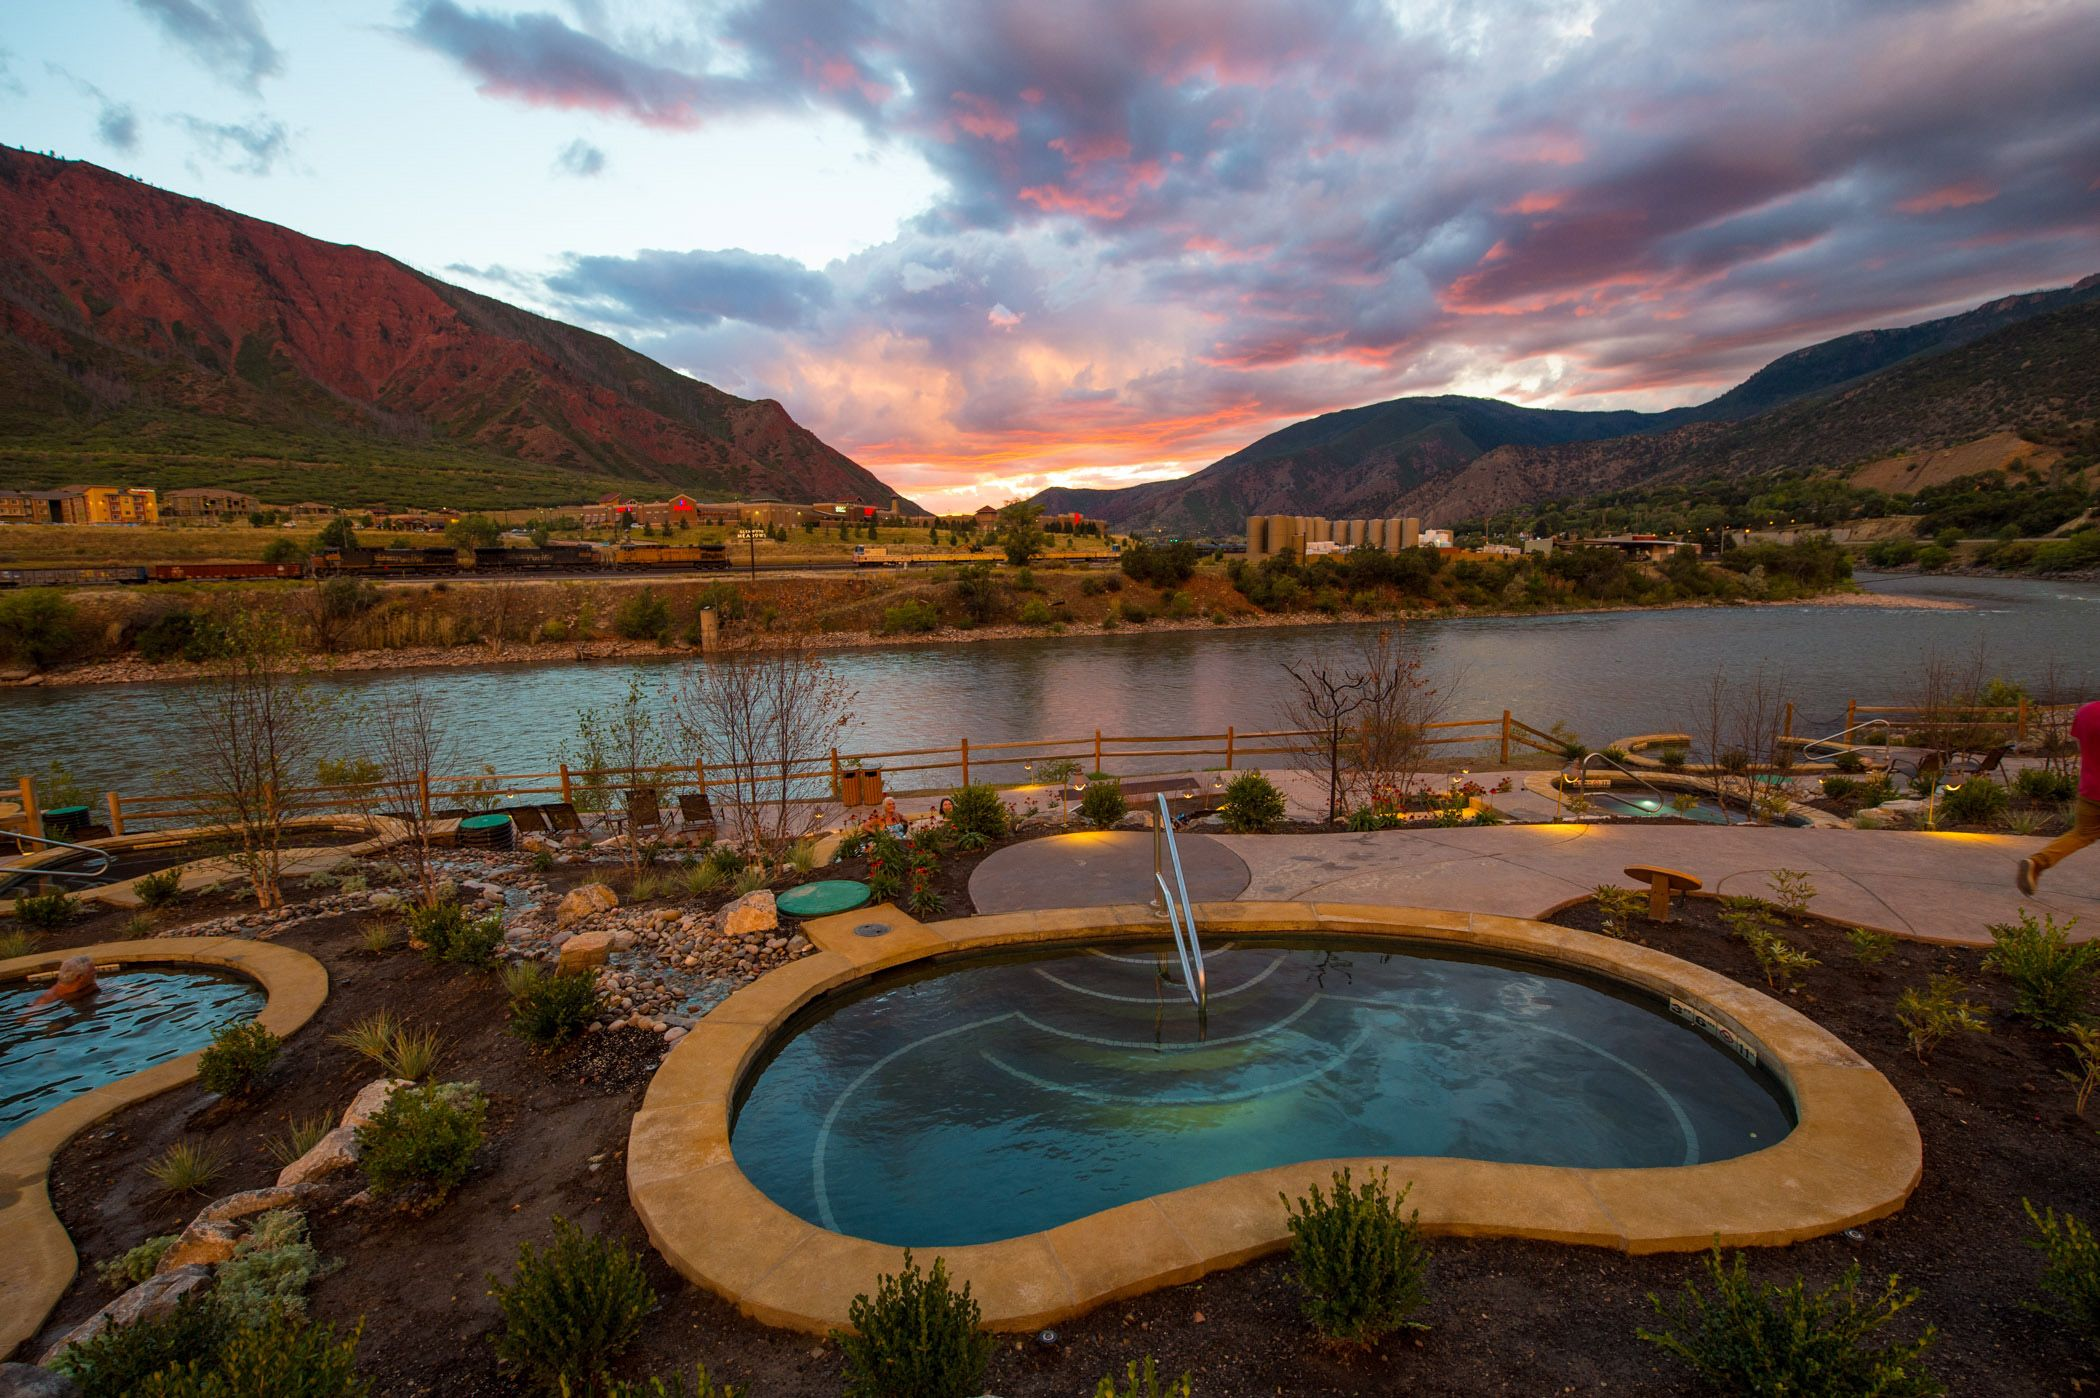 iron mountain hot springs nestled on the colorado river in glenwood